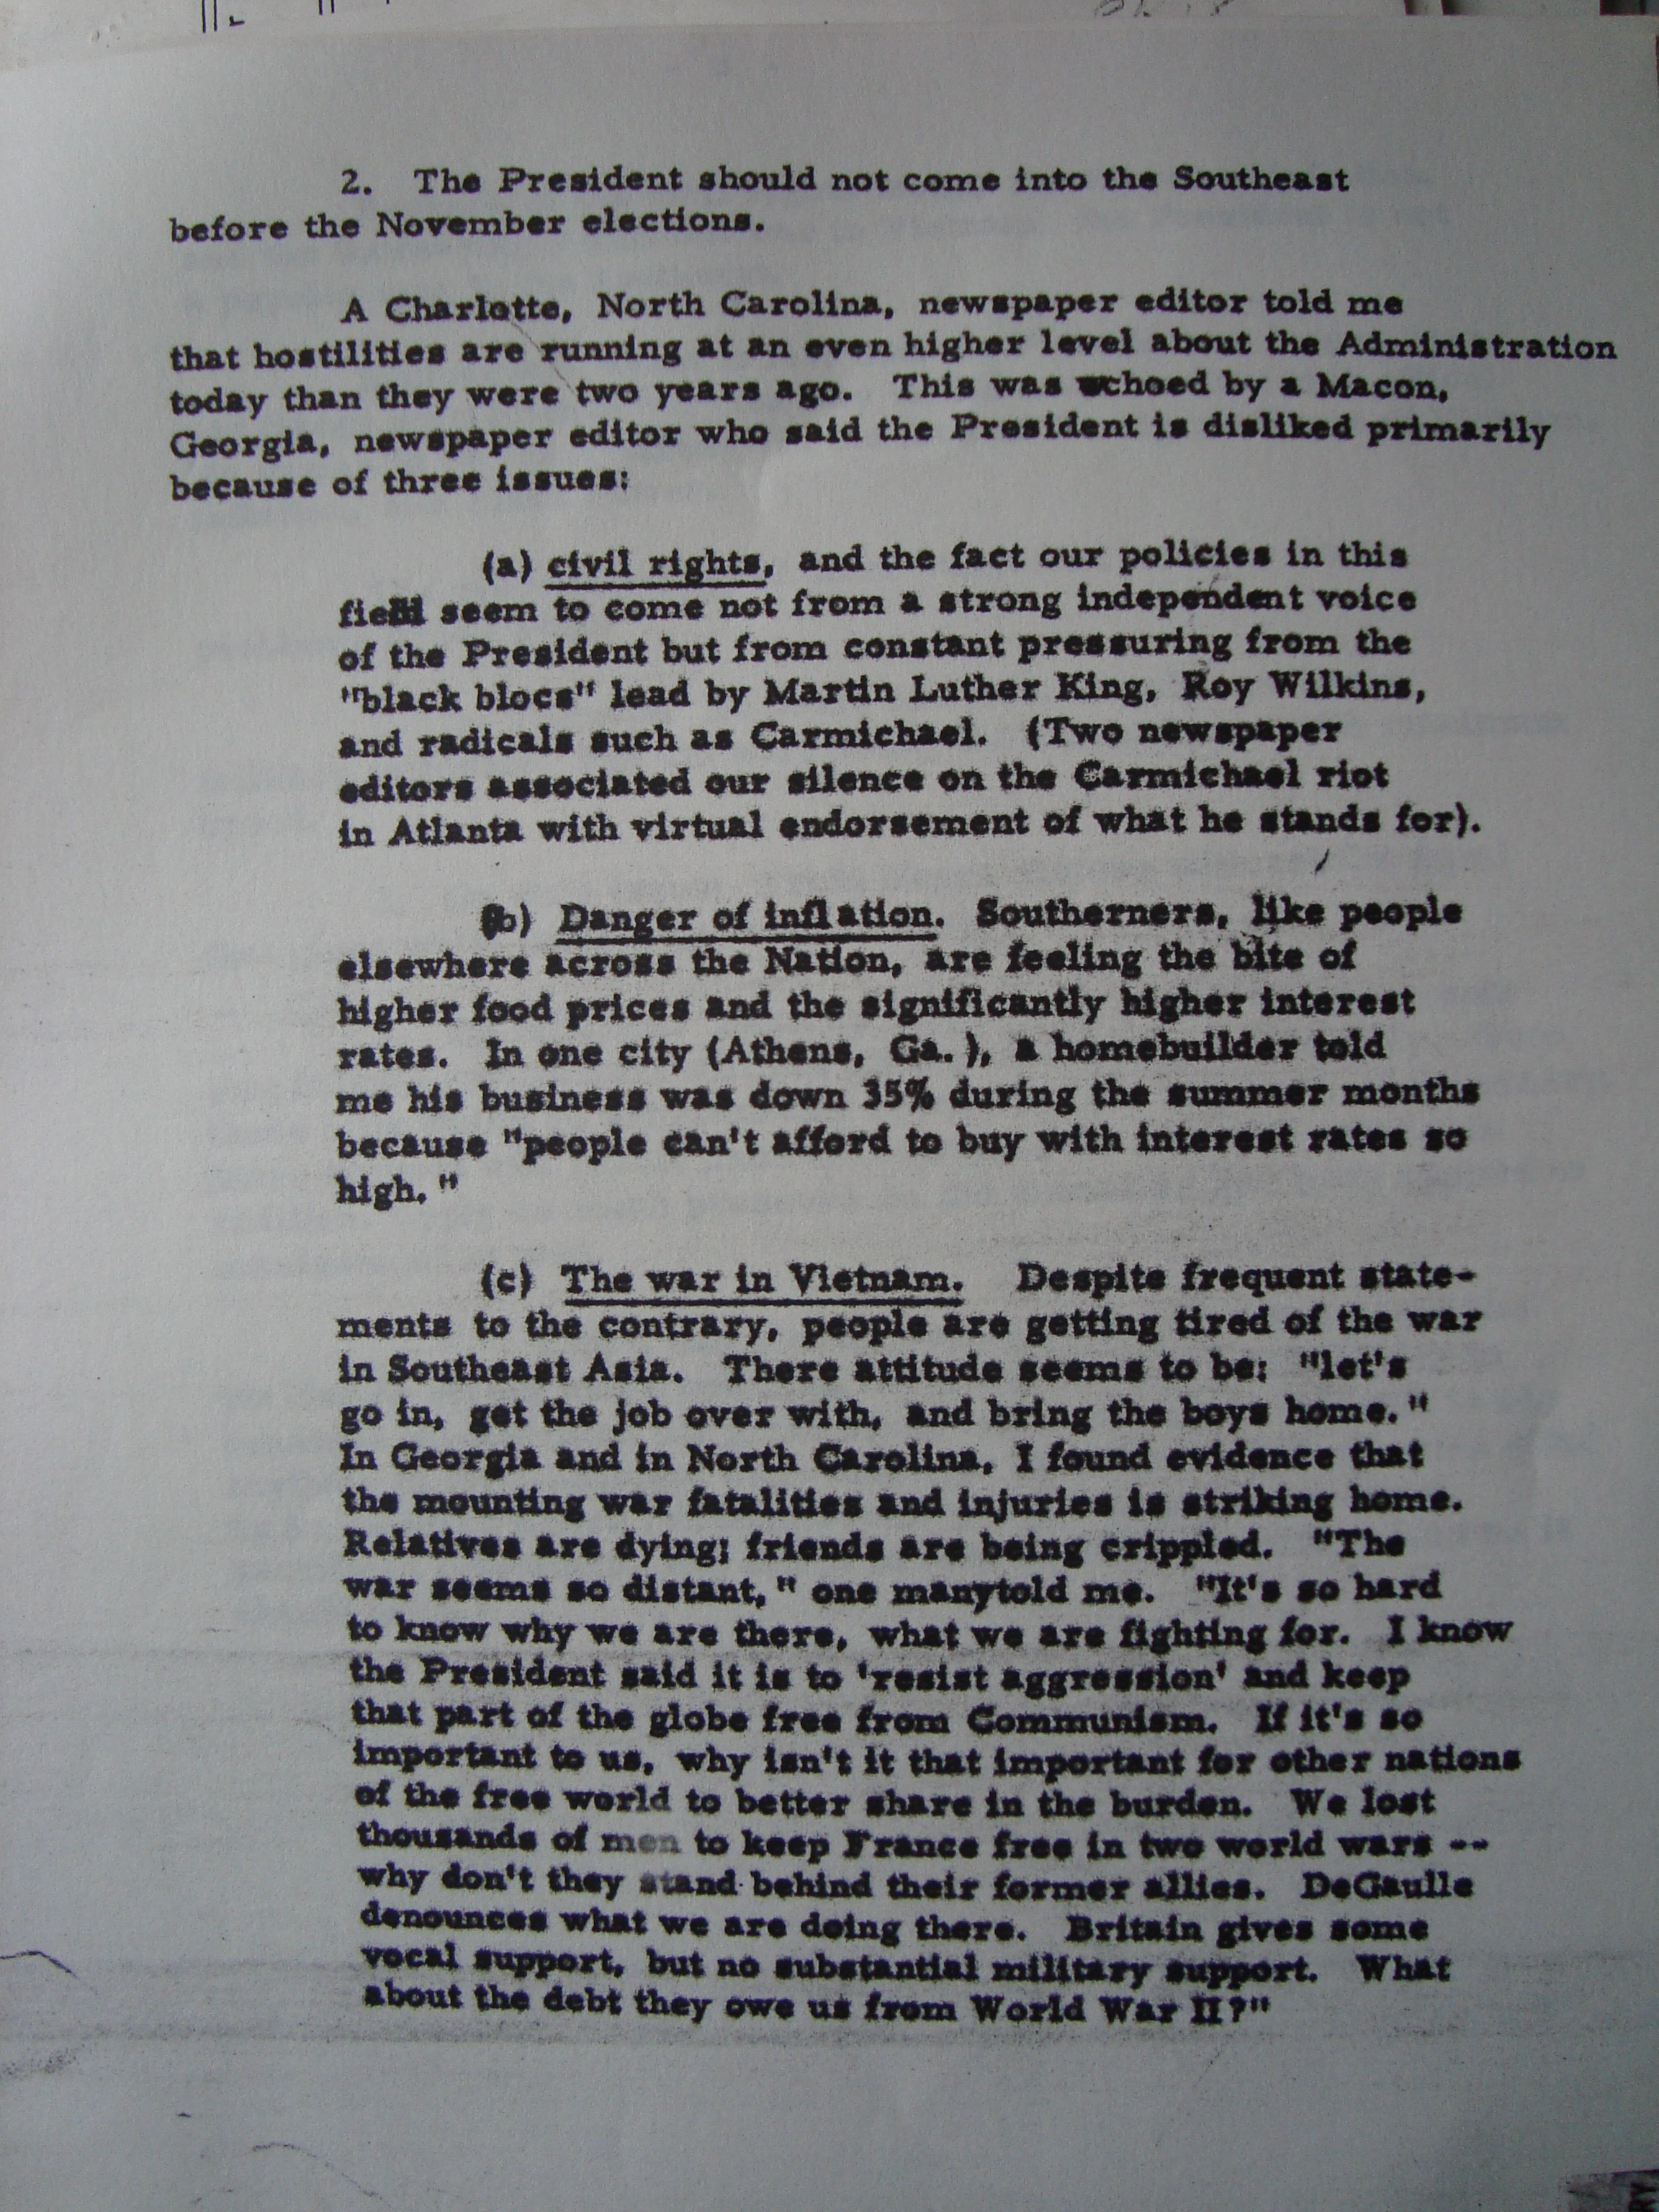 LBJ Johnson memo 2